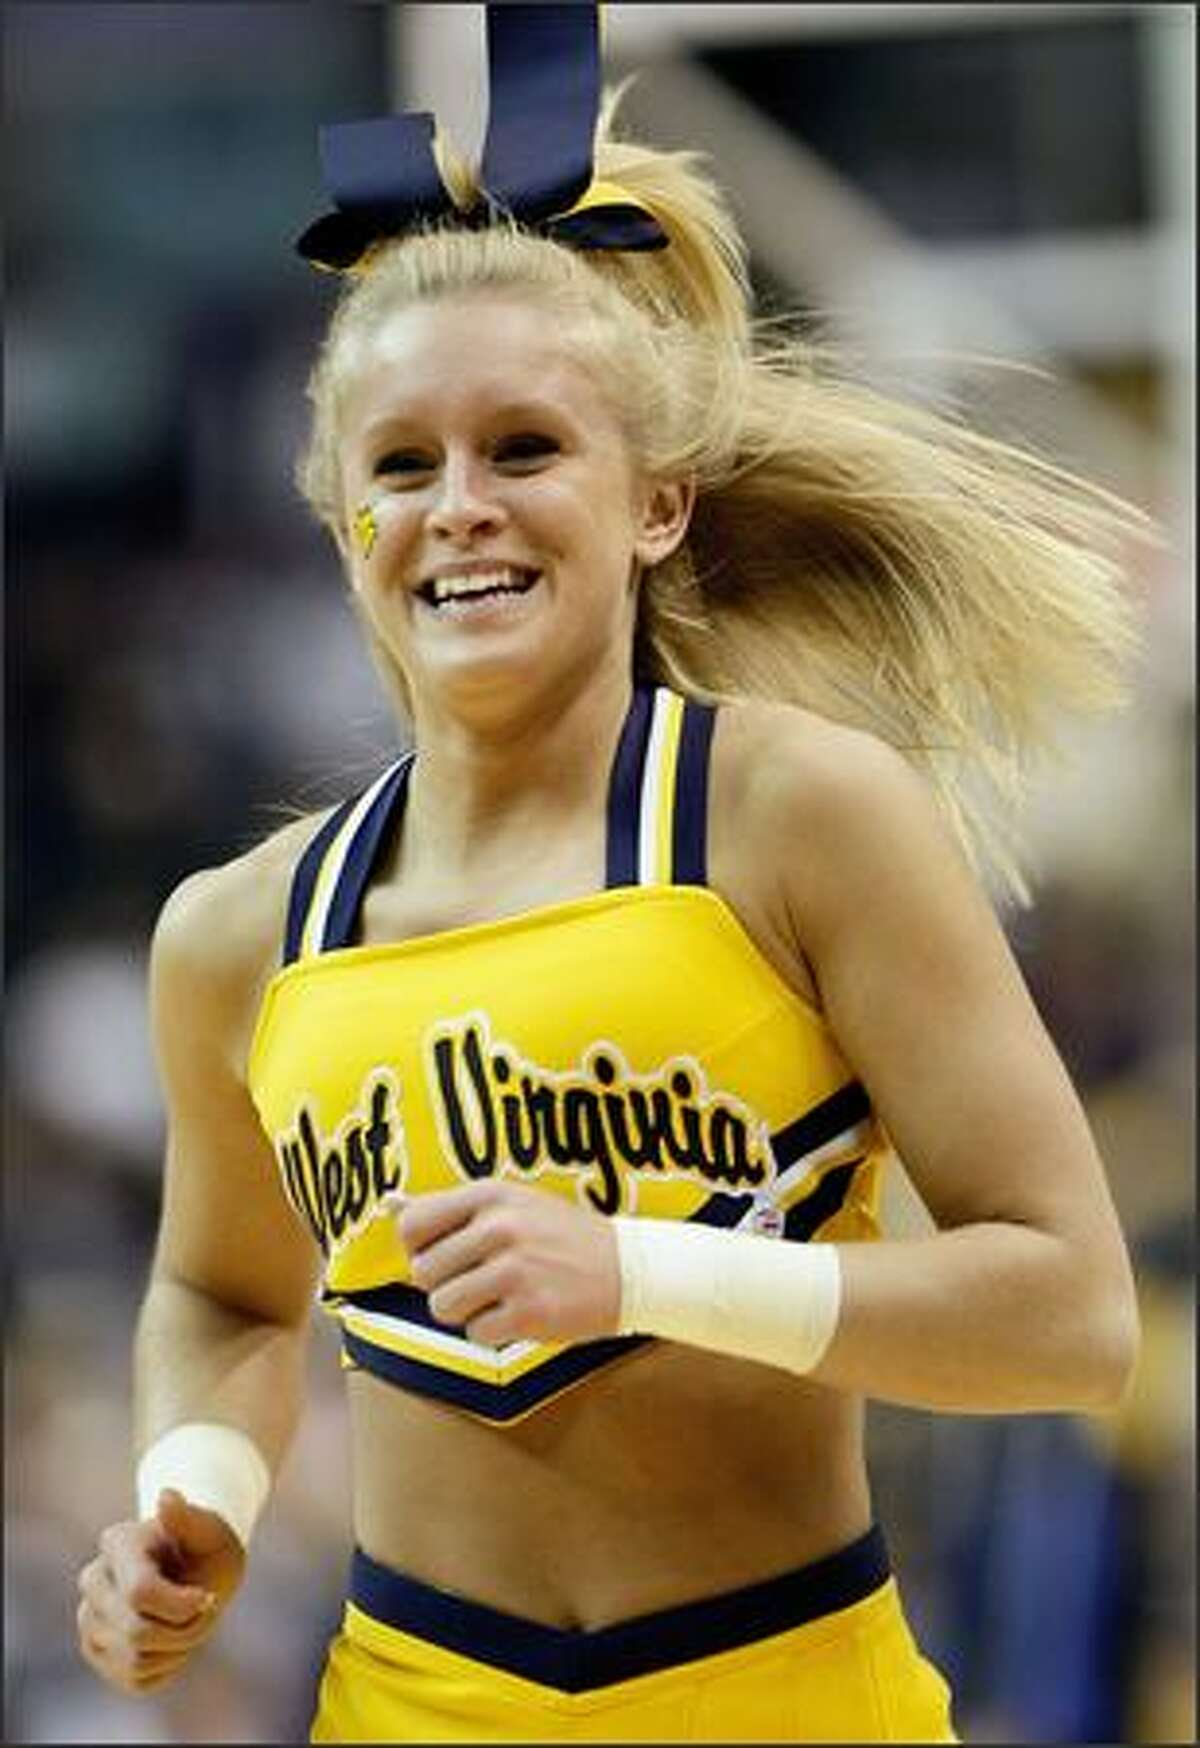 A cheerleader for the West Virginia Mountaineers preforms during a break in play against the Duke Blue Devils during the second round of the West Regional at the Verizon Center in Washington.